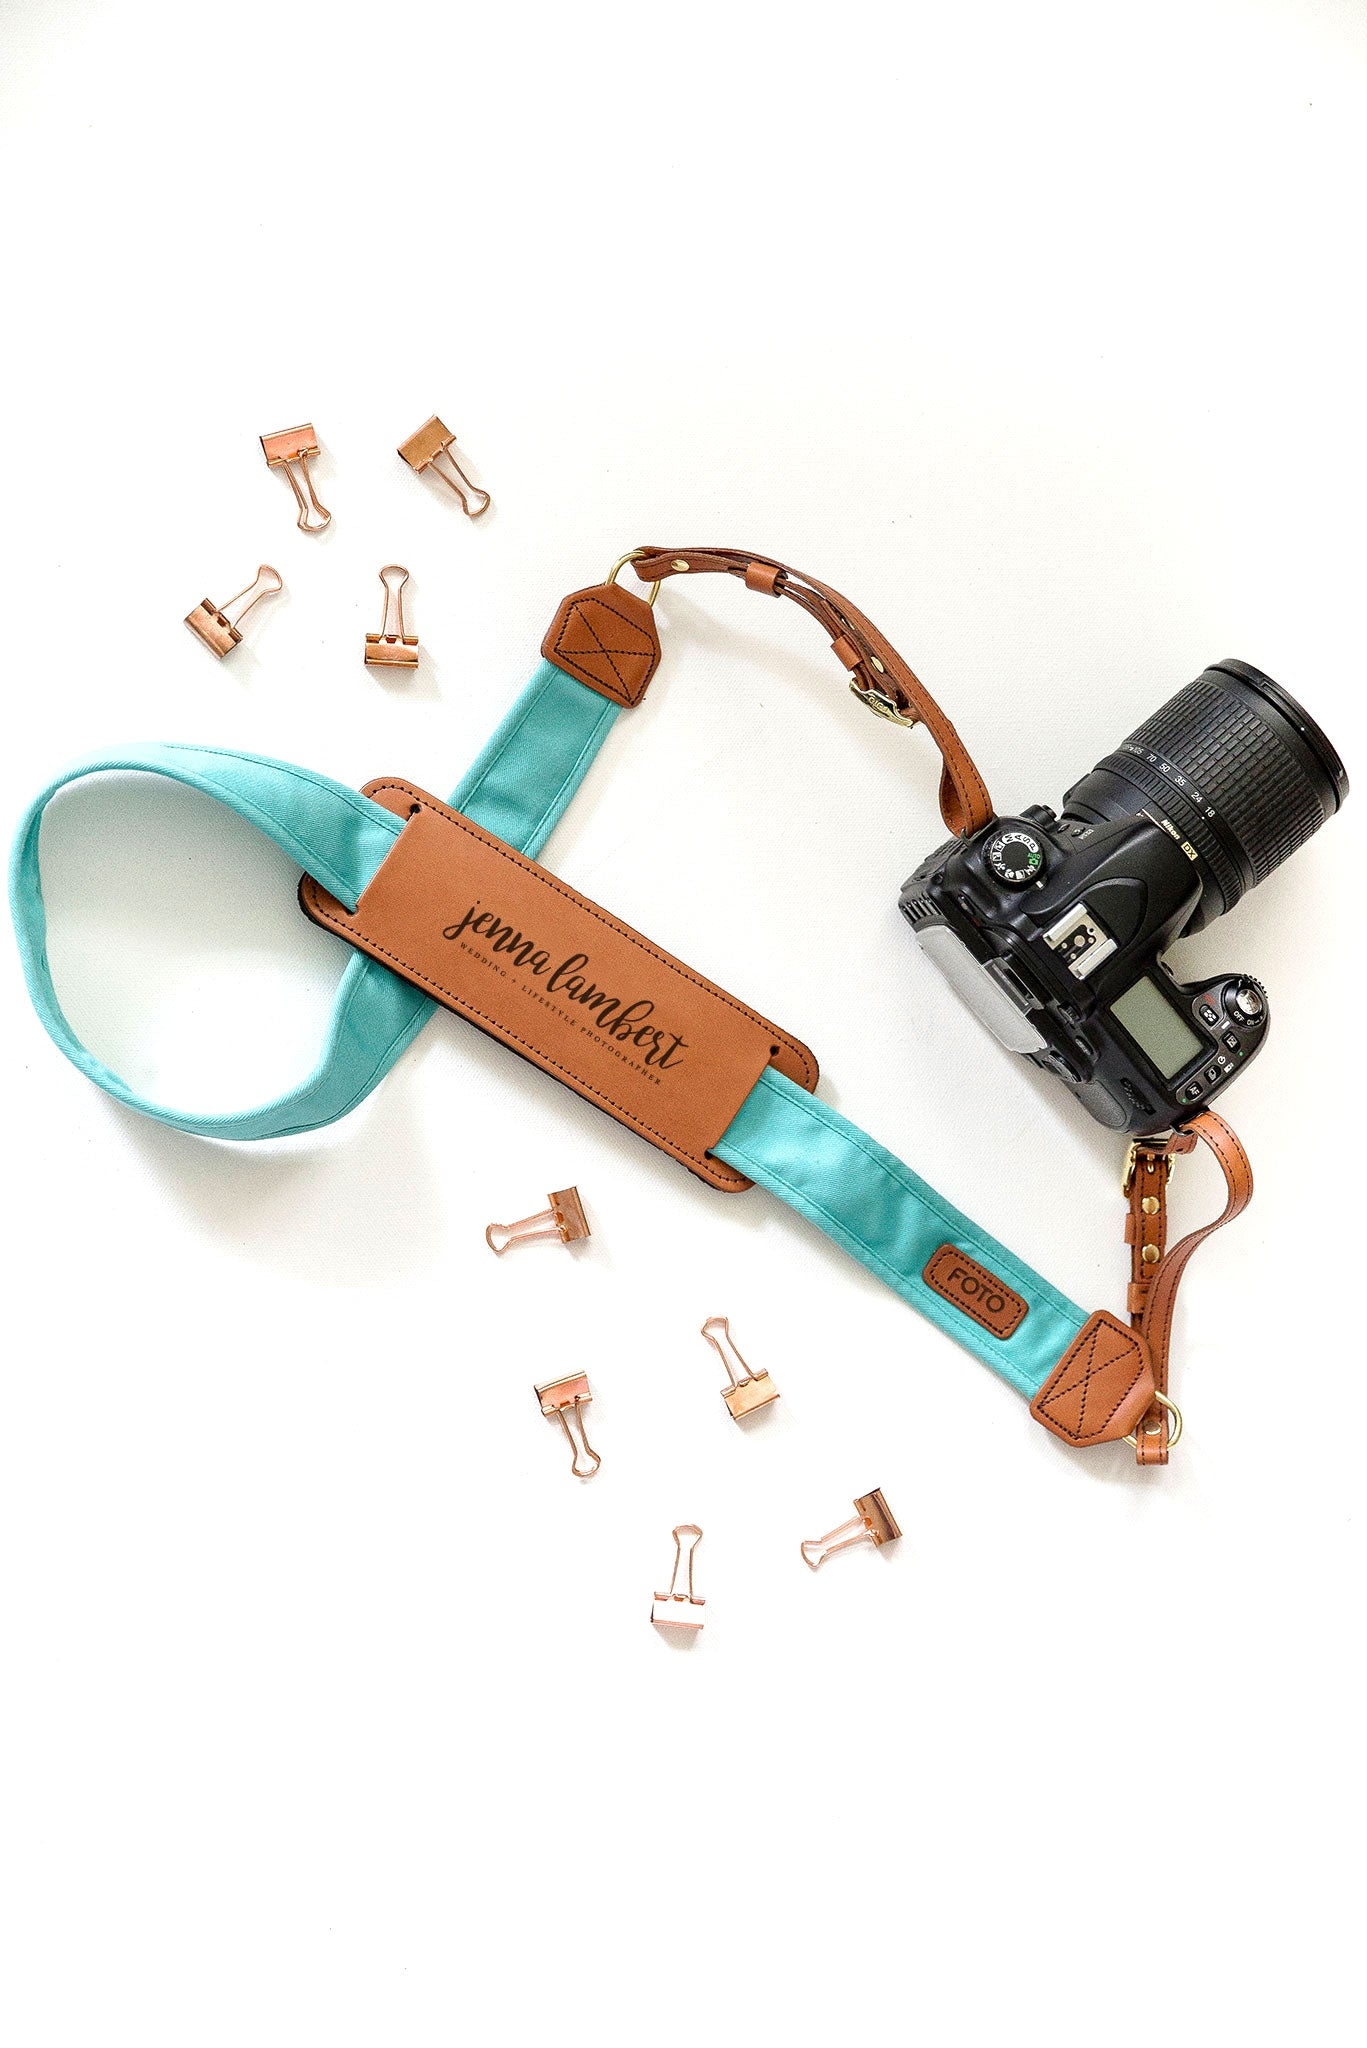 FOTO | Seaside Fotostrap for Her - a turquoise canvas and genuine leather camera strap that can be personalized with a monogram or business logo, making it the perfect personalized gift!